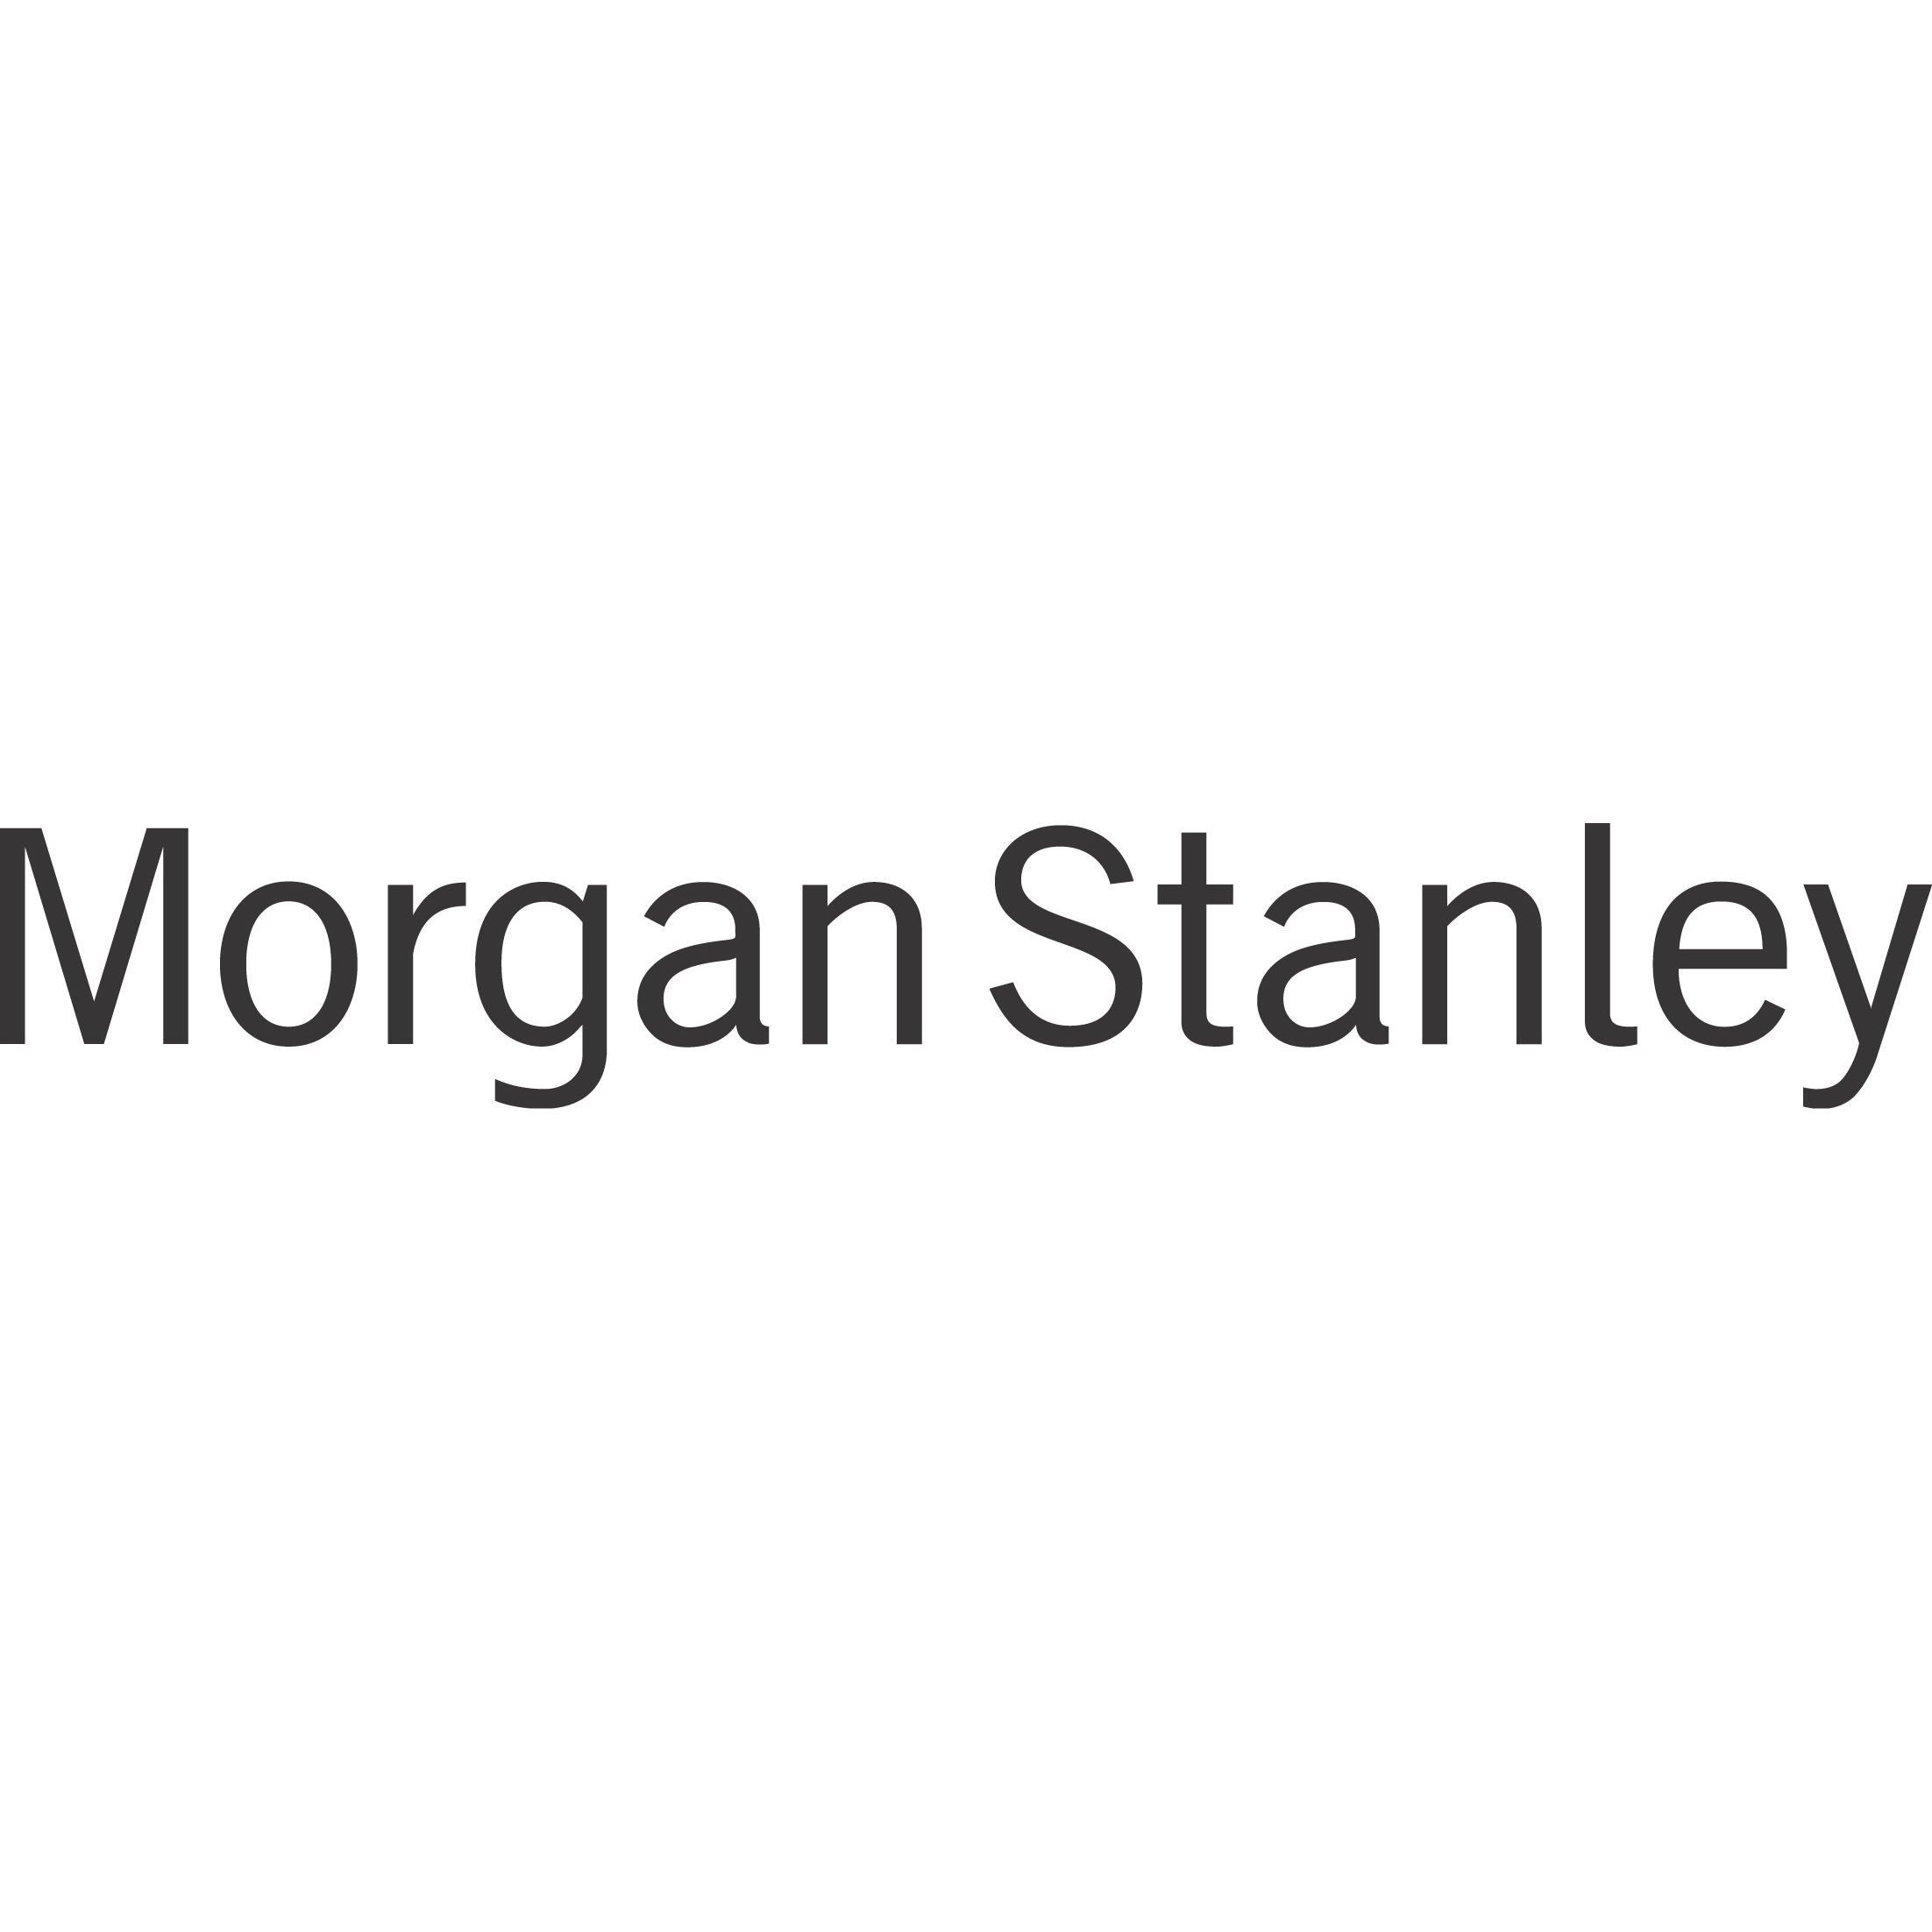 Andrew J. Venable - Morgan Stanley